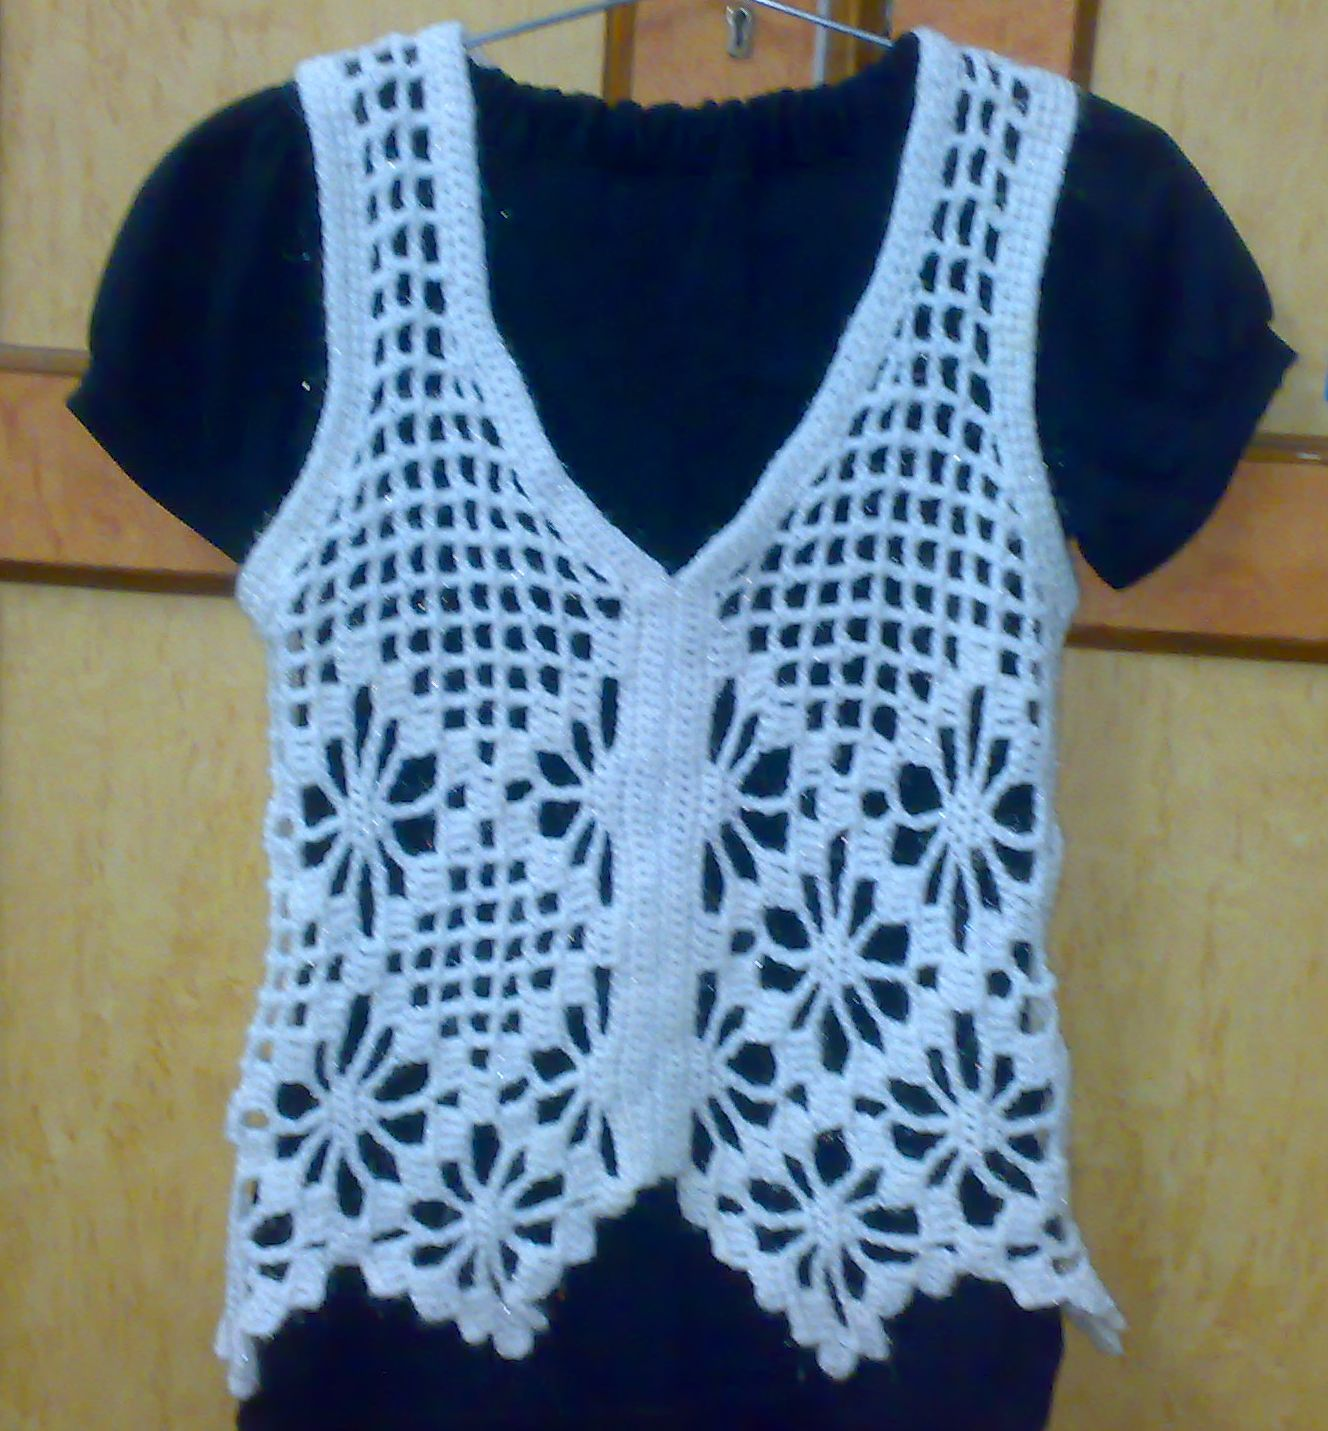 The Crochet Tangle Untangled: Filet Crochet - White Mesh Vest